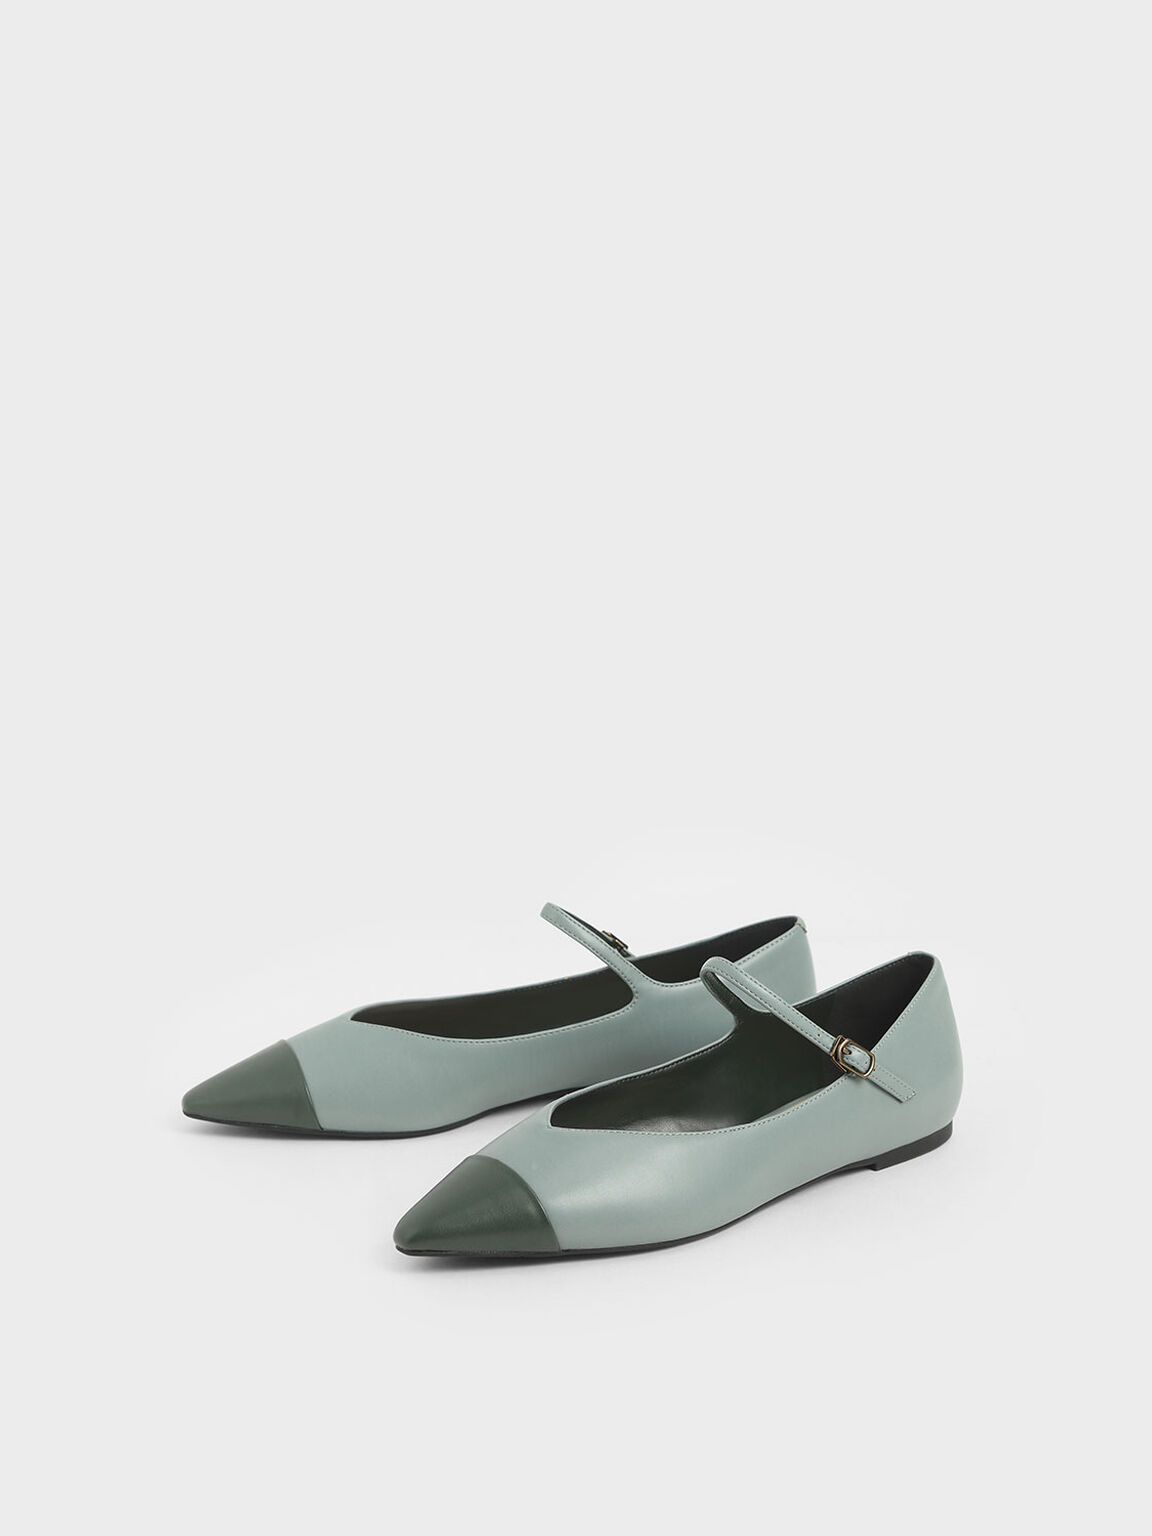 Two-Tone Pointed Toe Mary Jane Flats, Slate Blue, hi-res